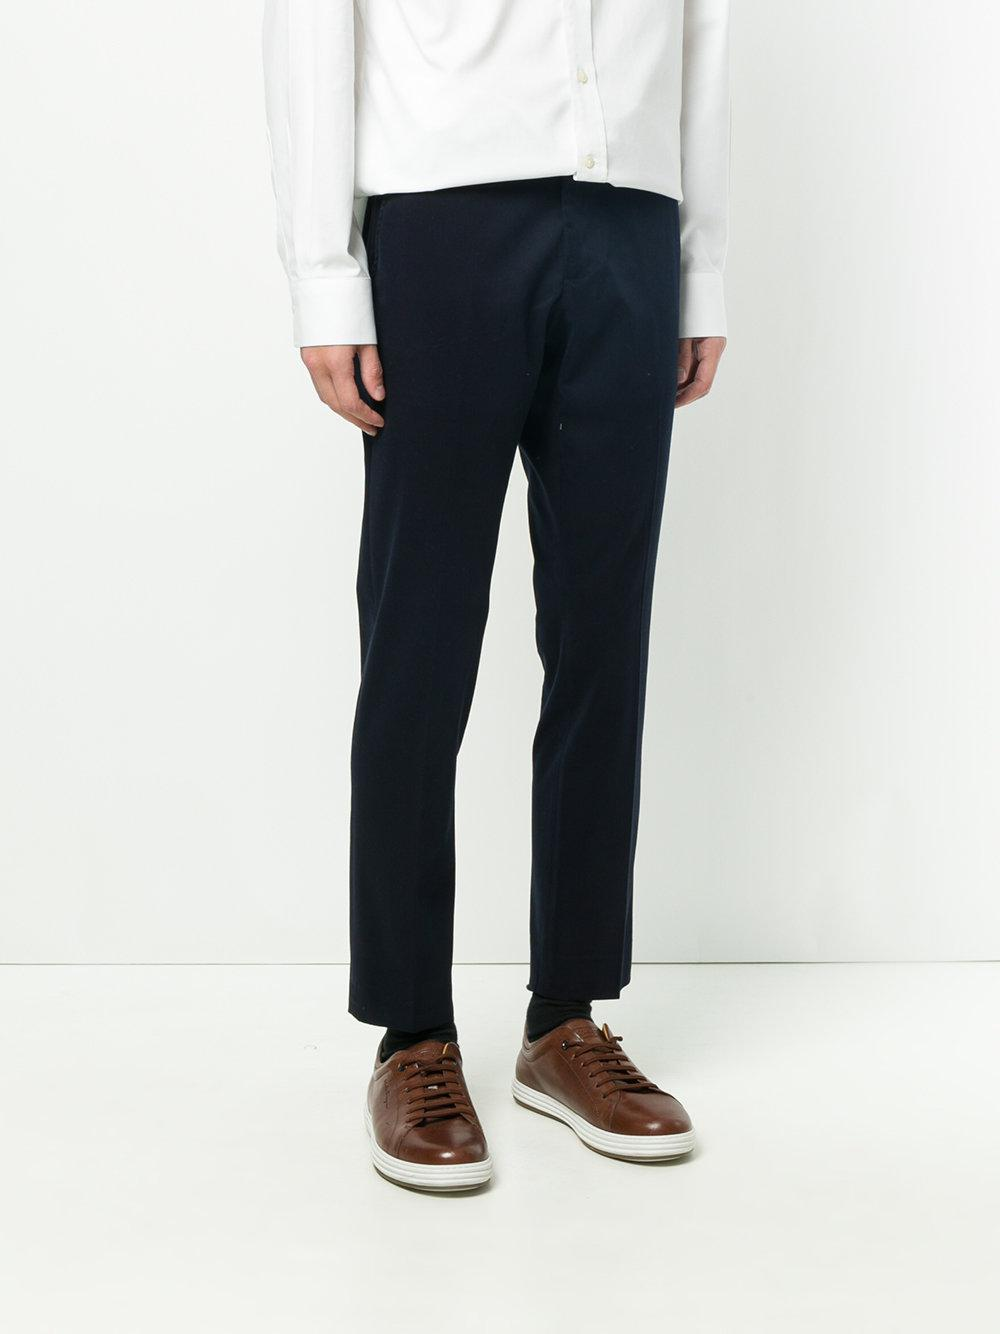 straight fit trousers - Blue Entre Amis Supply For Sale Release Dates Low Cost Cheap Price High Quality Online Cheap Pay With Paypal QNZoT7JHX